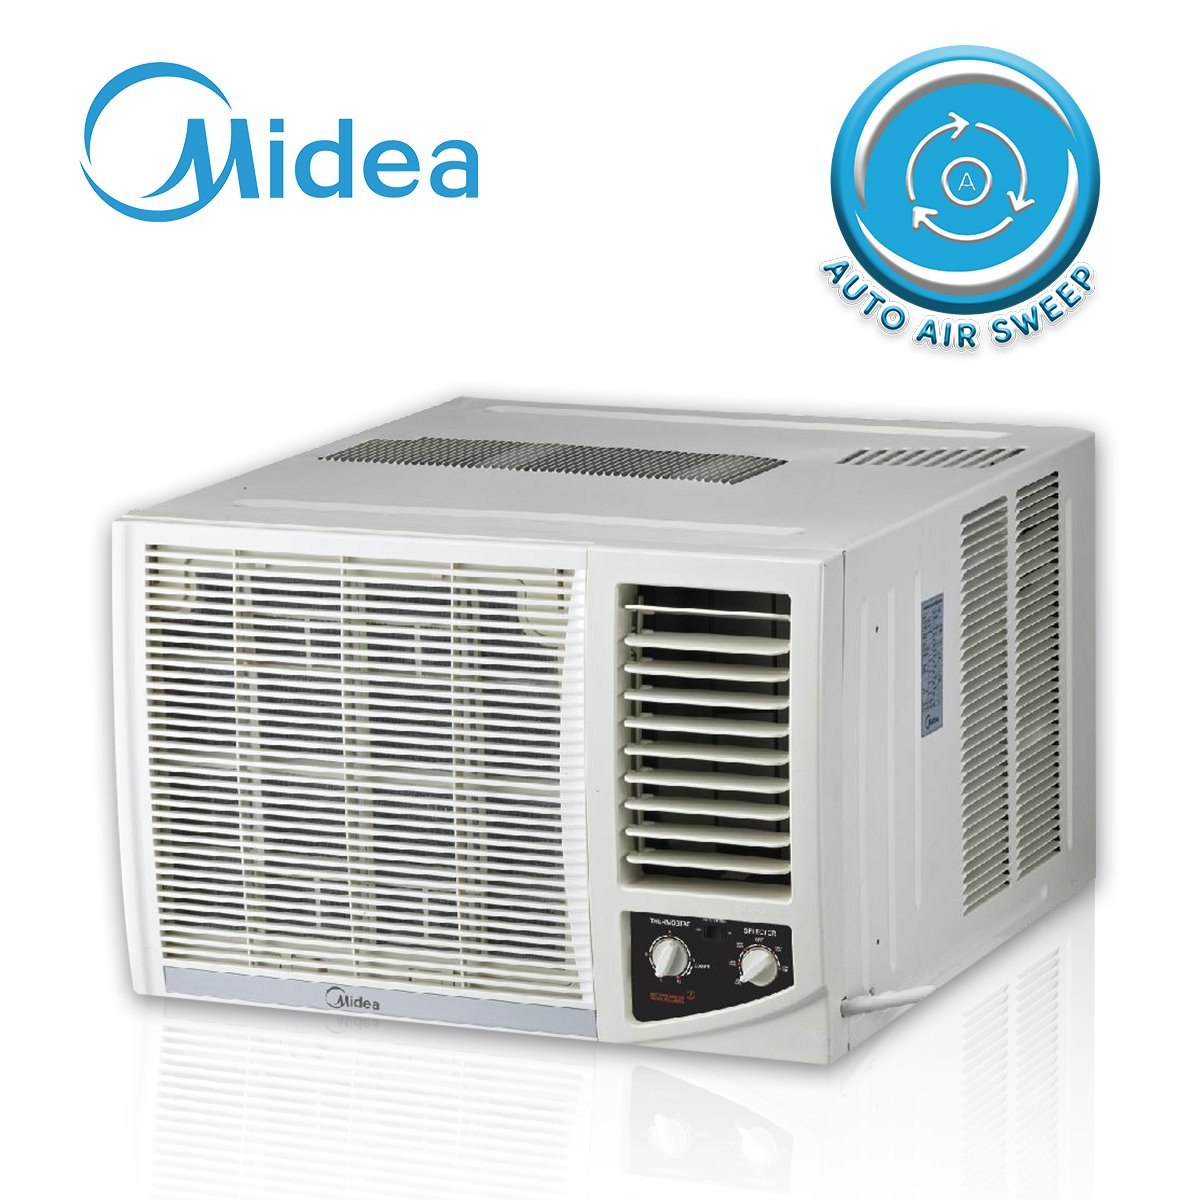 Midea 0.8HP Window Type Non Inverter Aircon - Manual